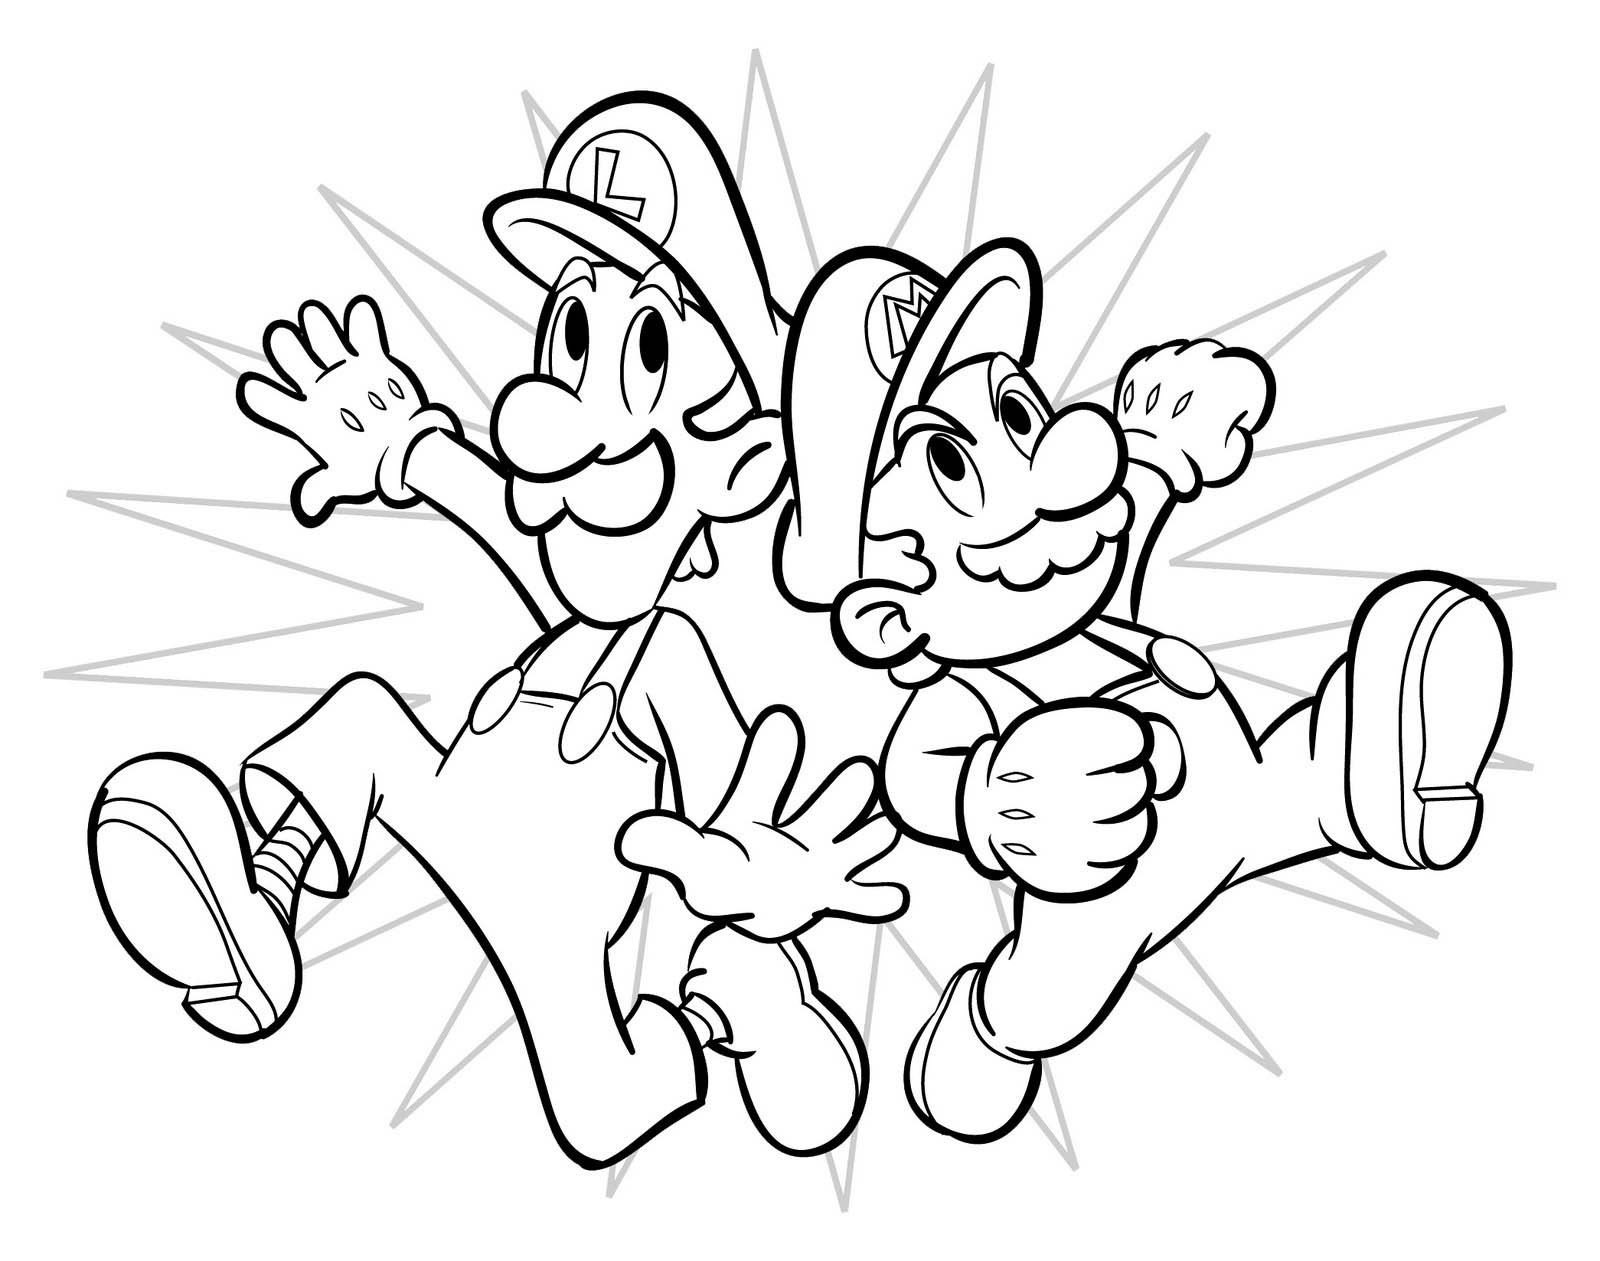 Children's coloring in pages